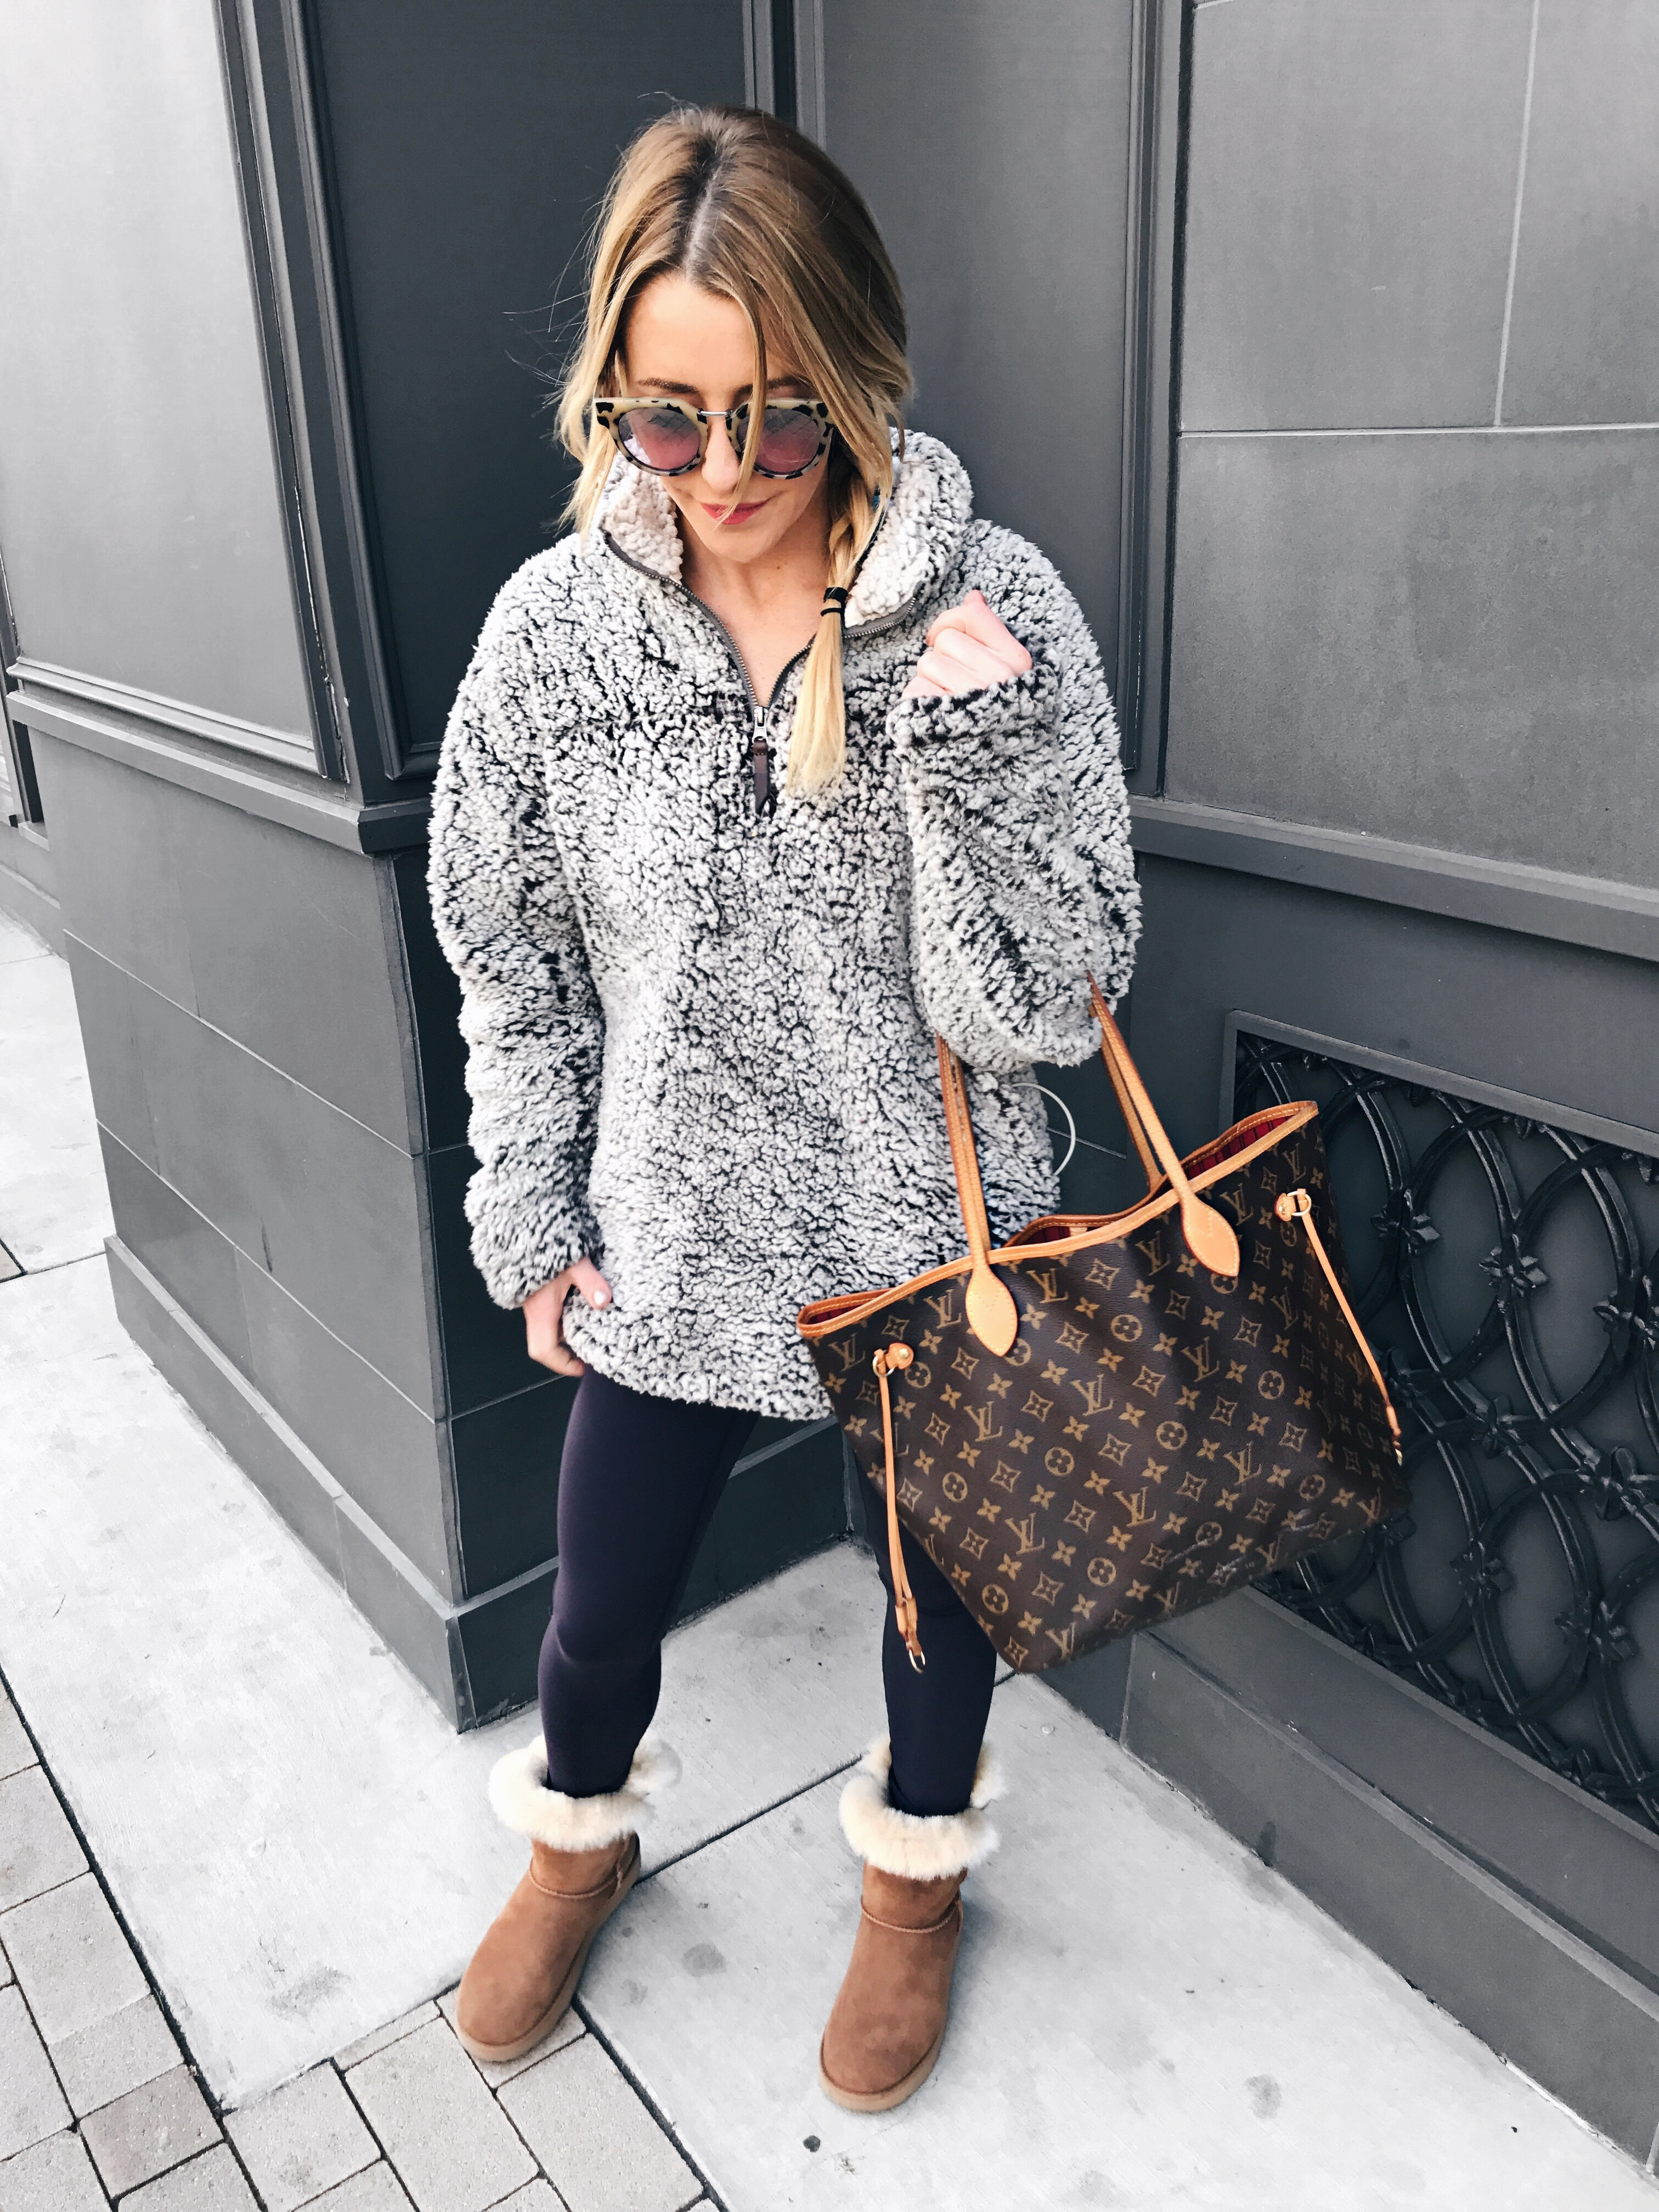 Fuzzy Fashion Roundup by popular San Diego fashion blogger For the Love